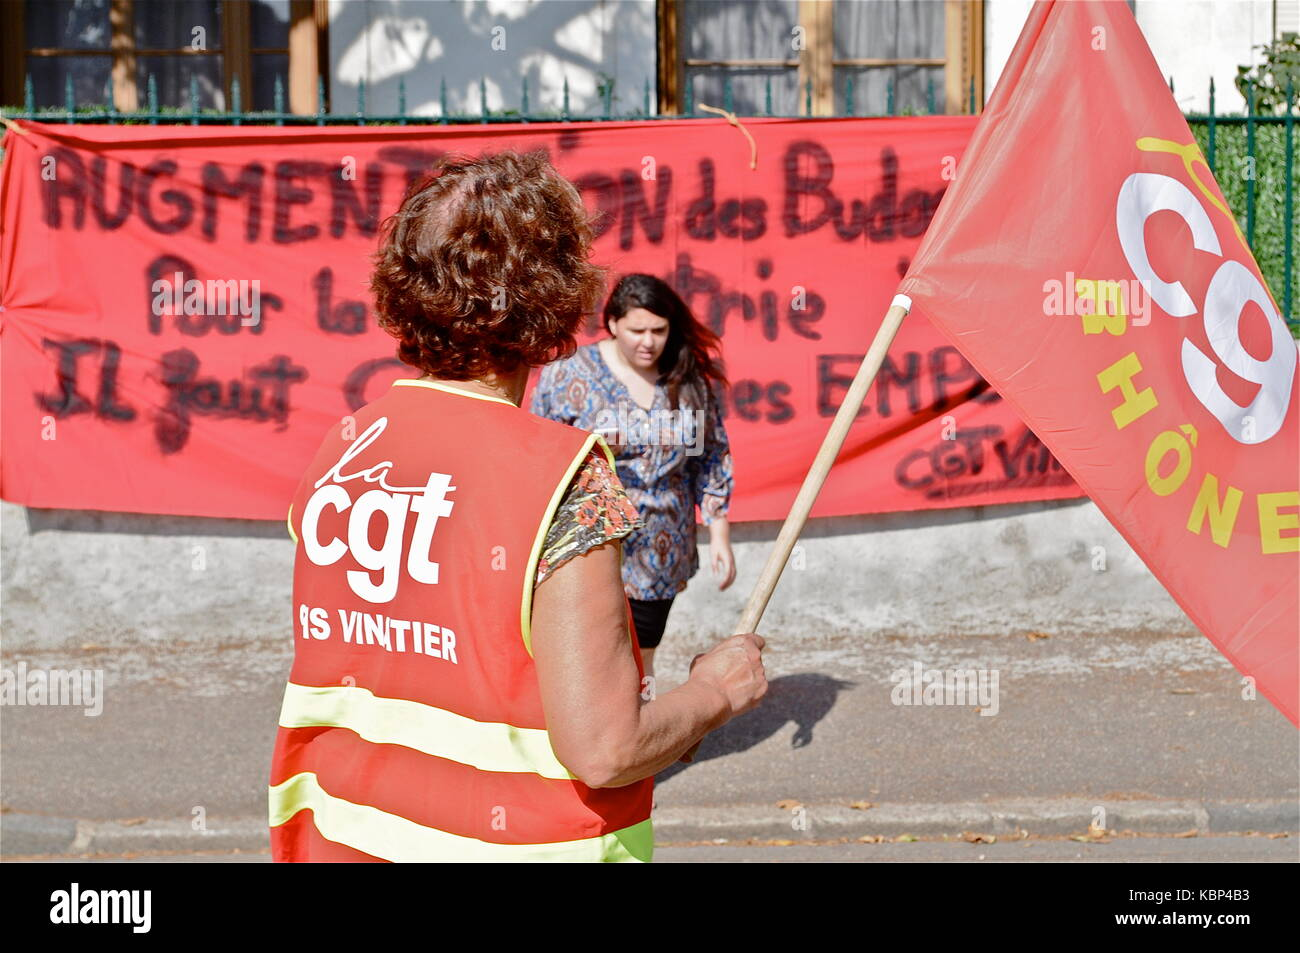 On strike Employees of Psychiatric hospital protest against working conditions, Bron, France Stock Photo